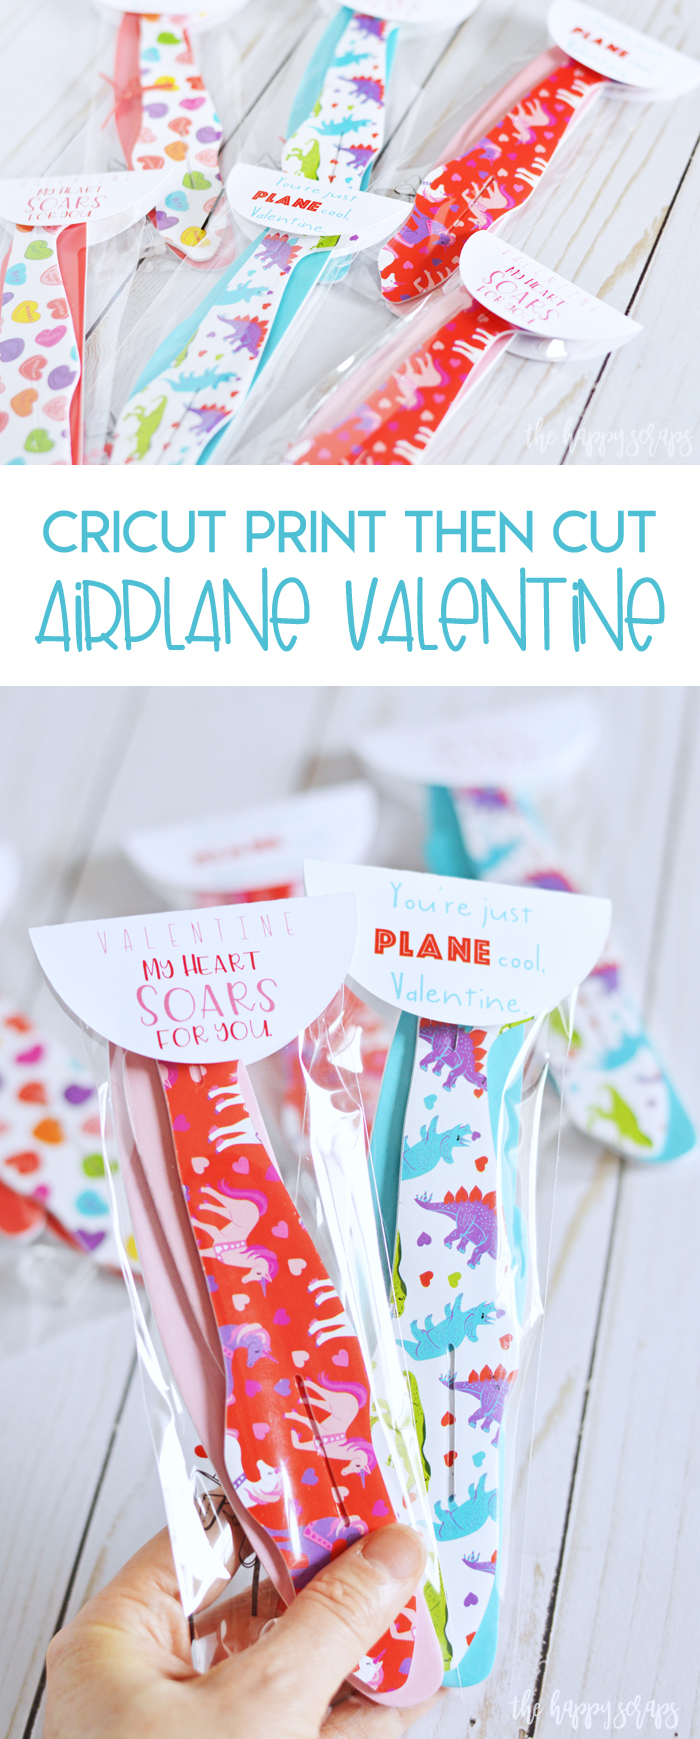 These Cricut Print then Cut Airplane Valentines will be the hit of the classroom party! Get the printable cut file on the blog.